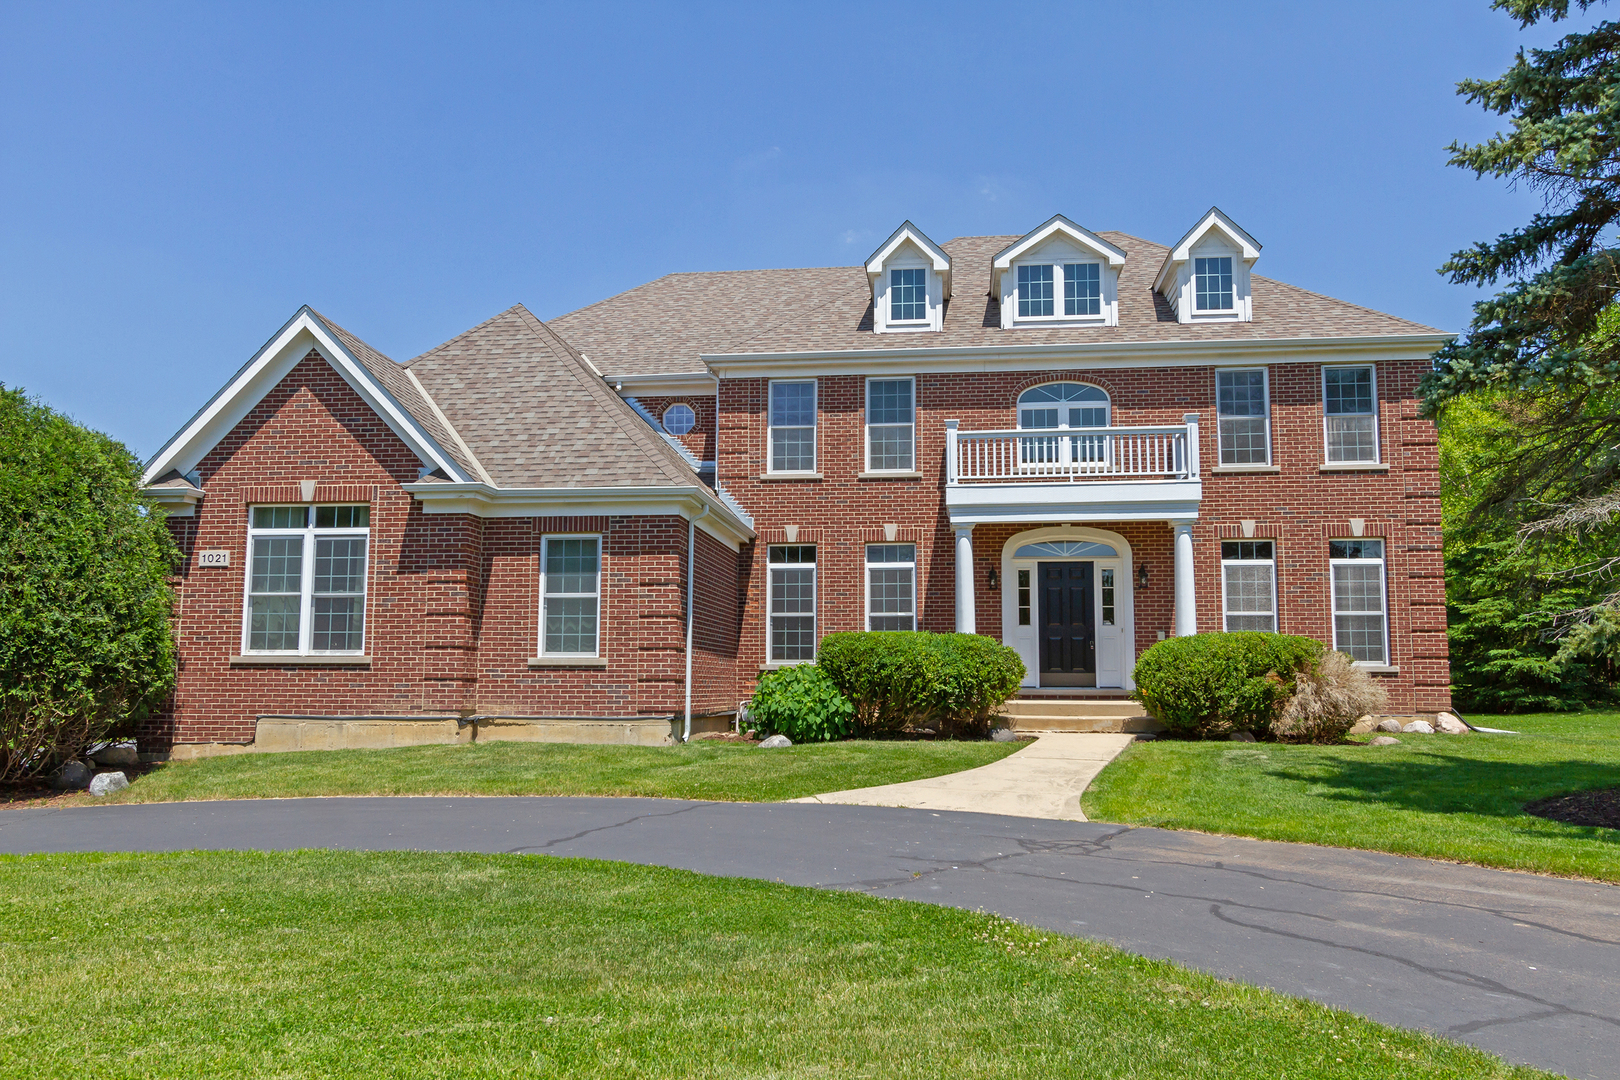 Photo for 1021 Mason Lane, Lake In The Hills, IL 60156 (MLS # 10902922)